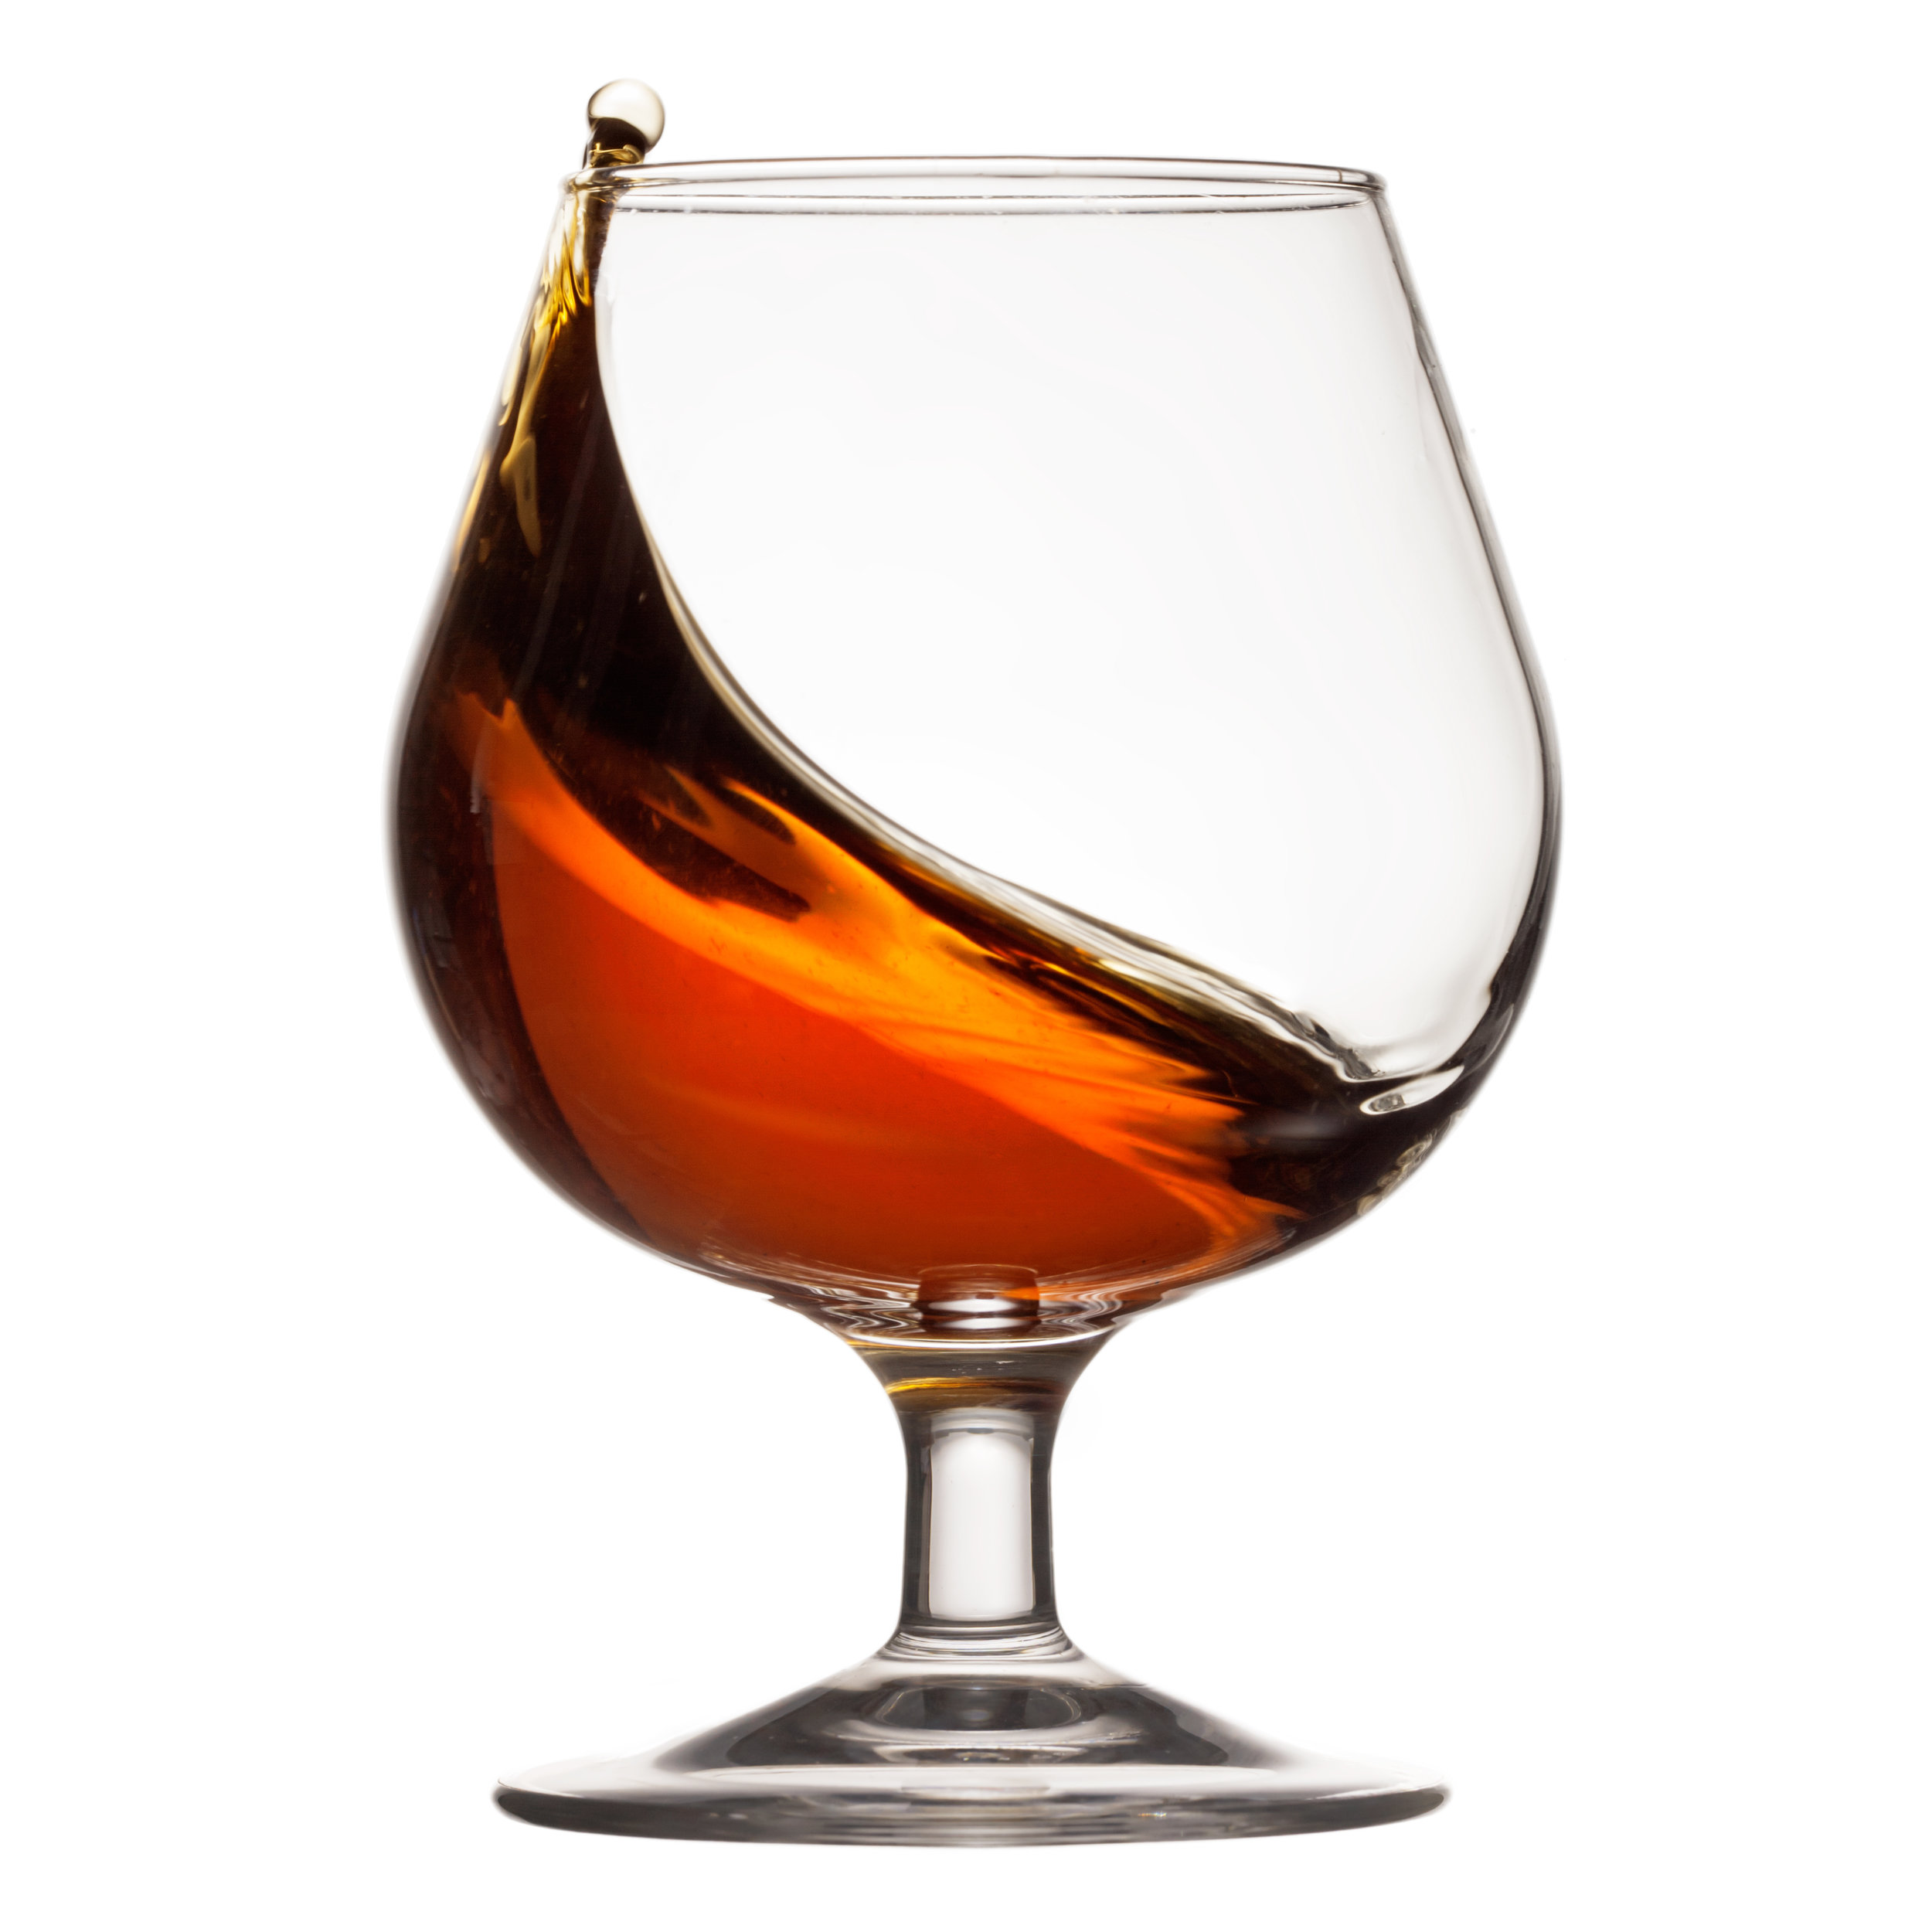 brandy in snifter-paid stock image.jpeg